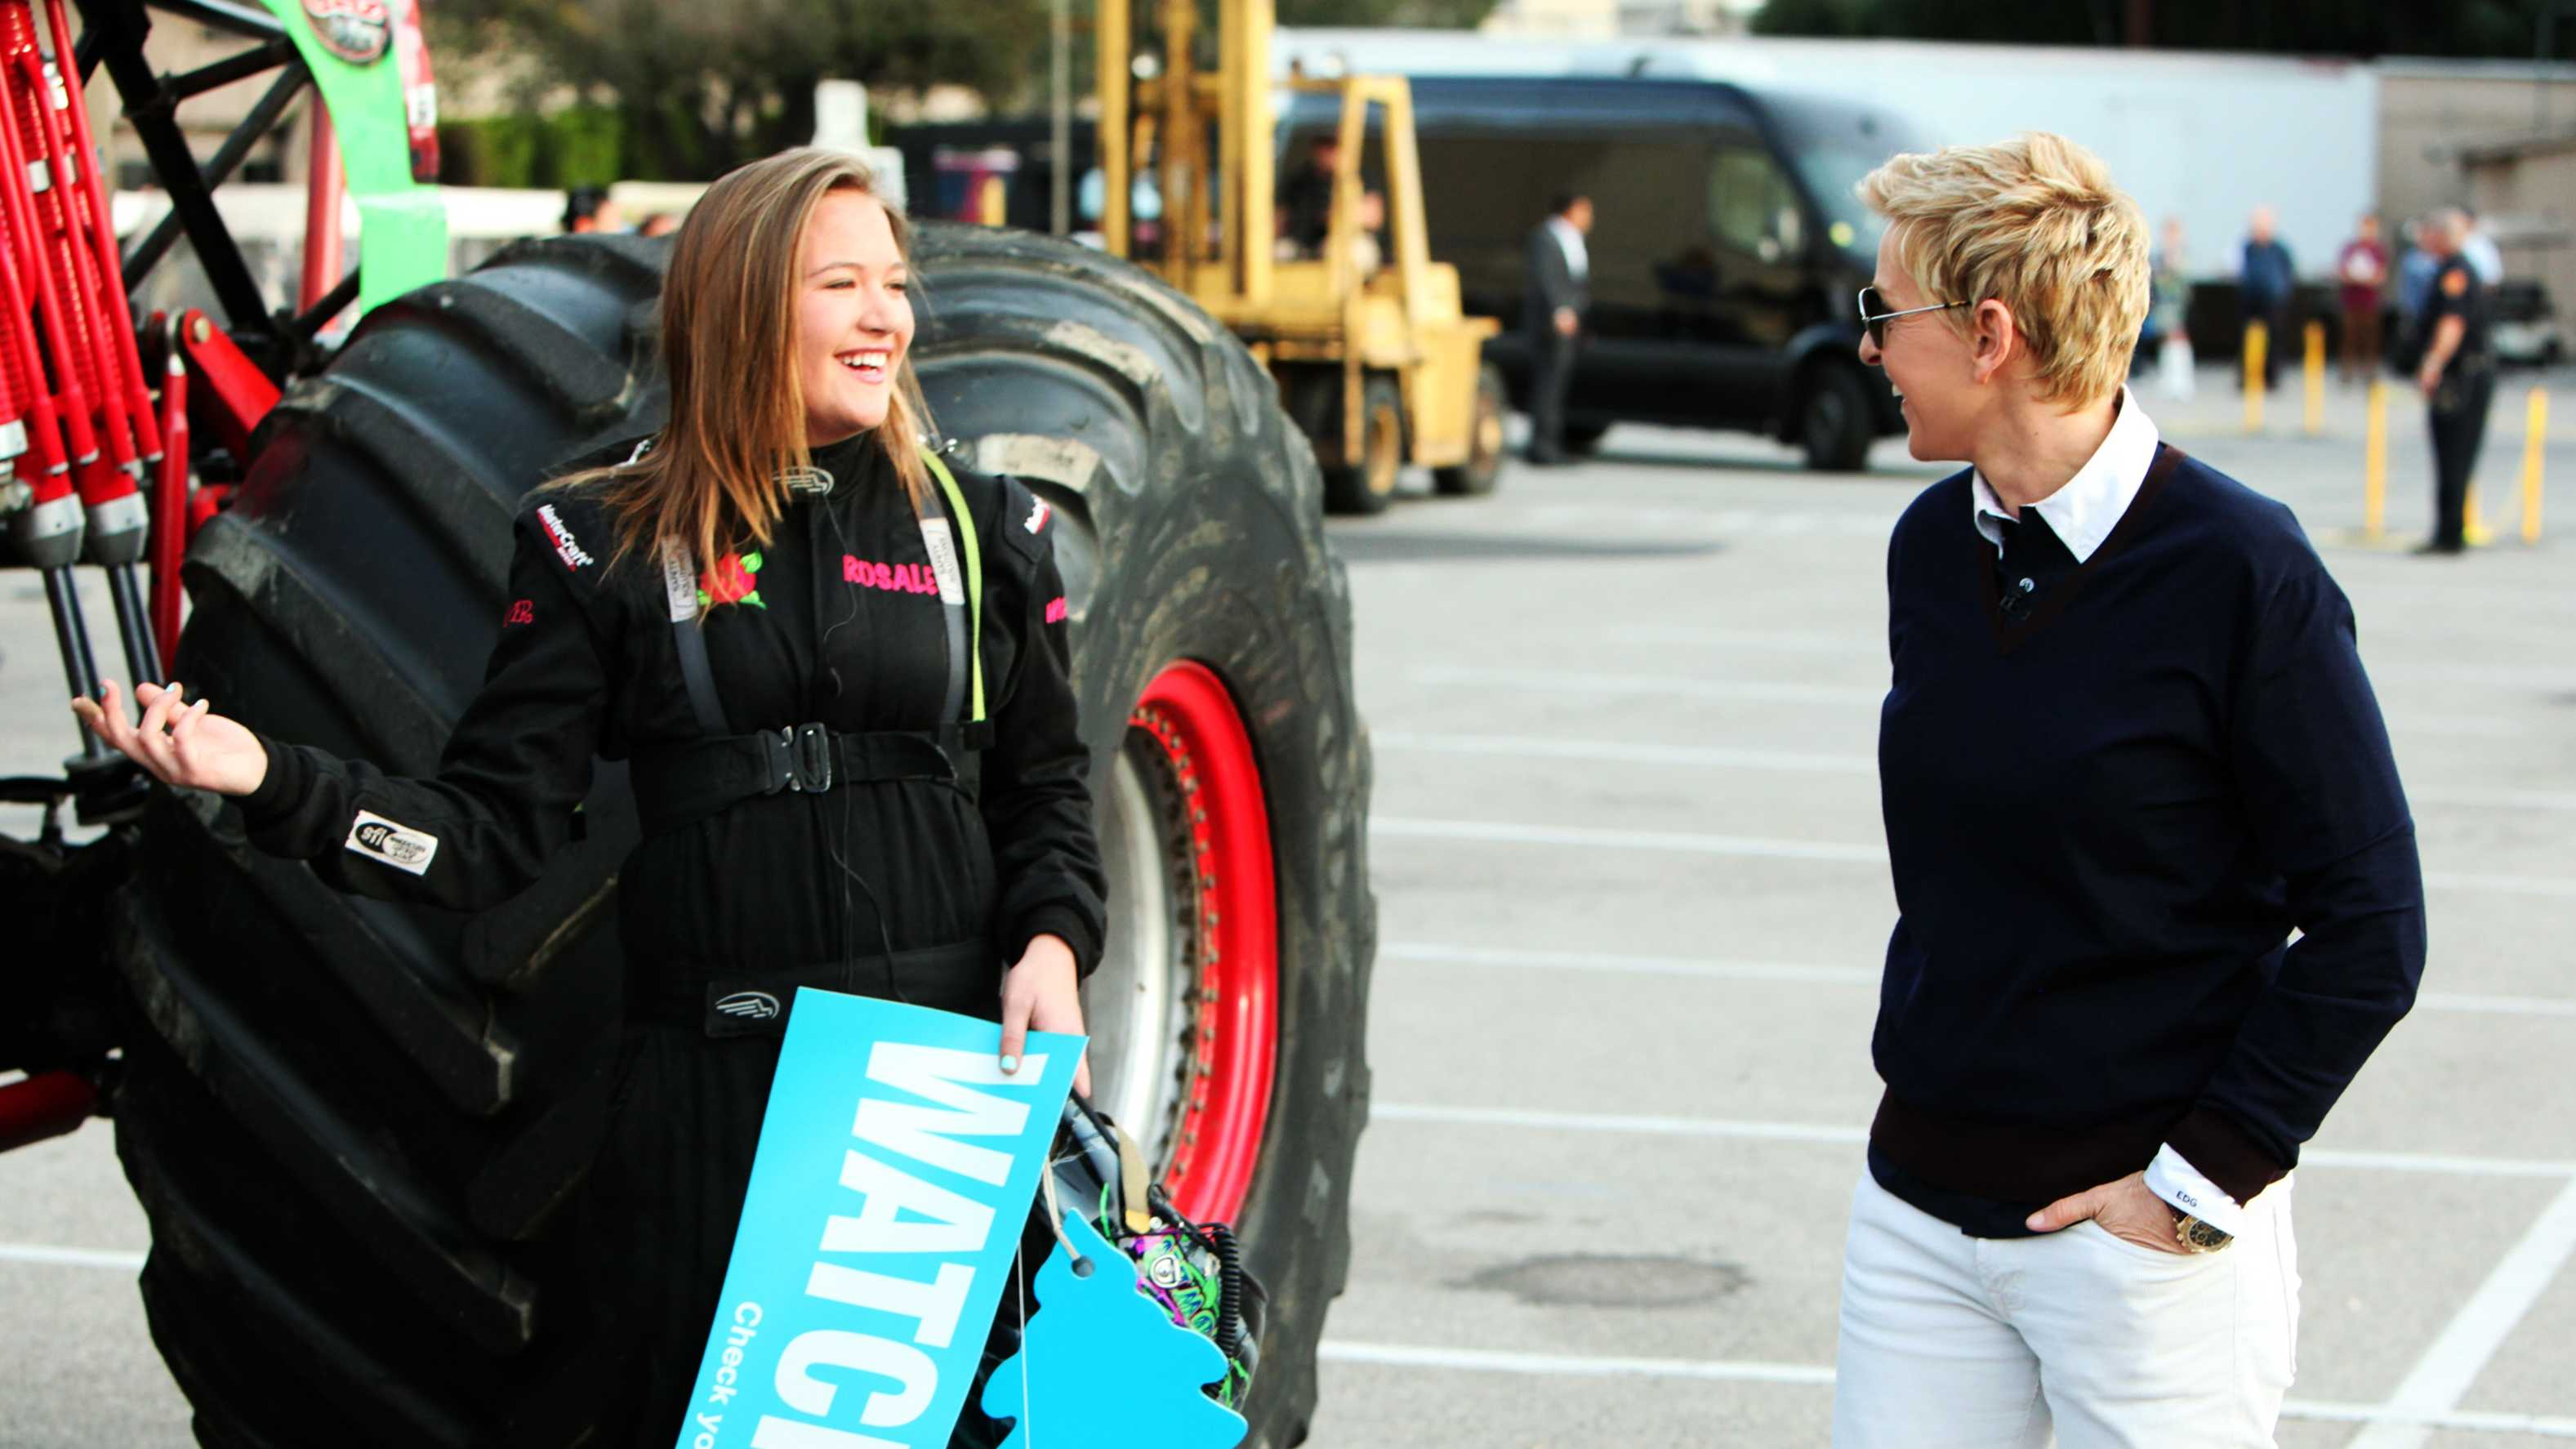 Rosalee Ramer shows Ellen DeGeneres her Monster Truck.